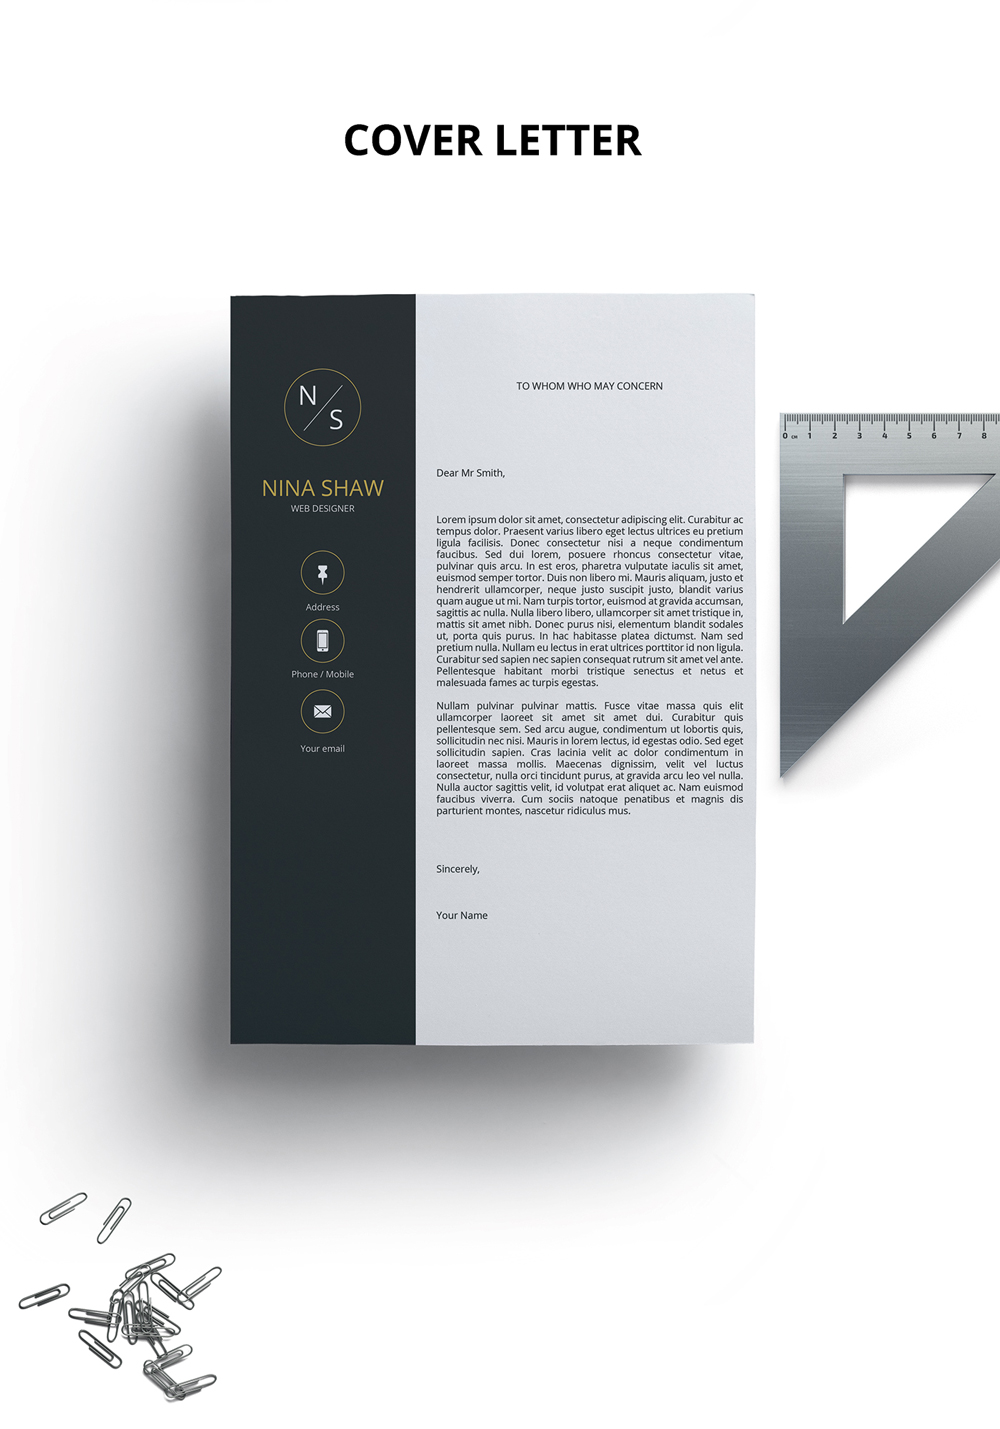 cover letter for web designer Upwork cover letter samples, examples and format 40 by uttambarai on march 10, 2018 blog, upwork upwork cover letter sample for web designer.